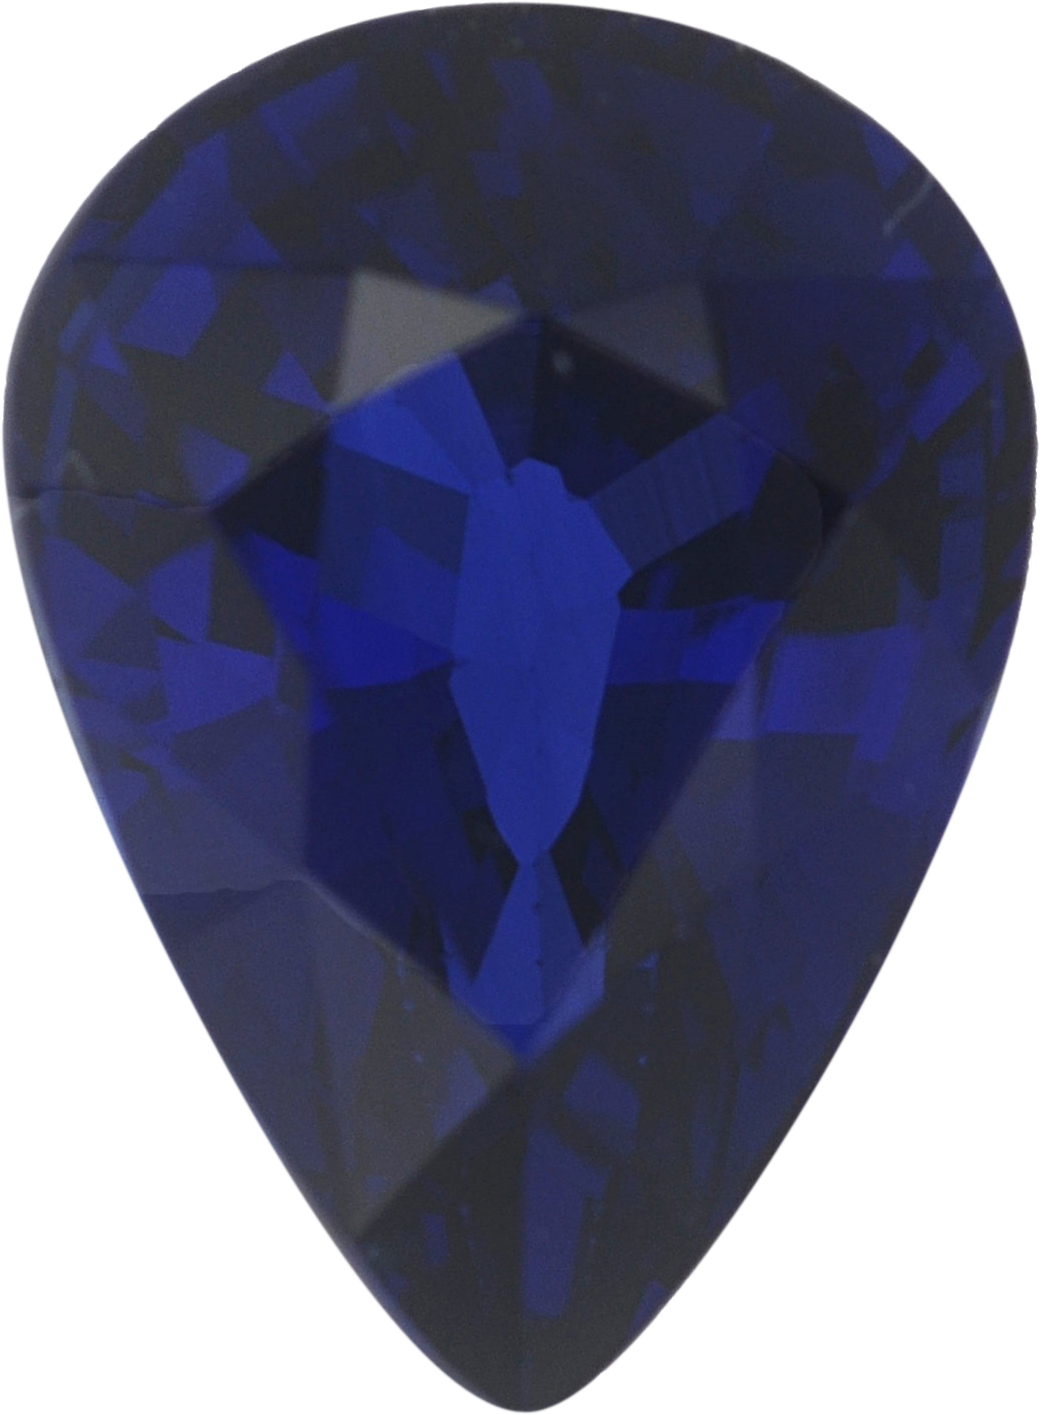 1.04 carats Blue Loose Sapphire Gemstone in Pear Cut, 7.06 x 5.08 mm